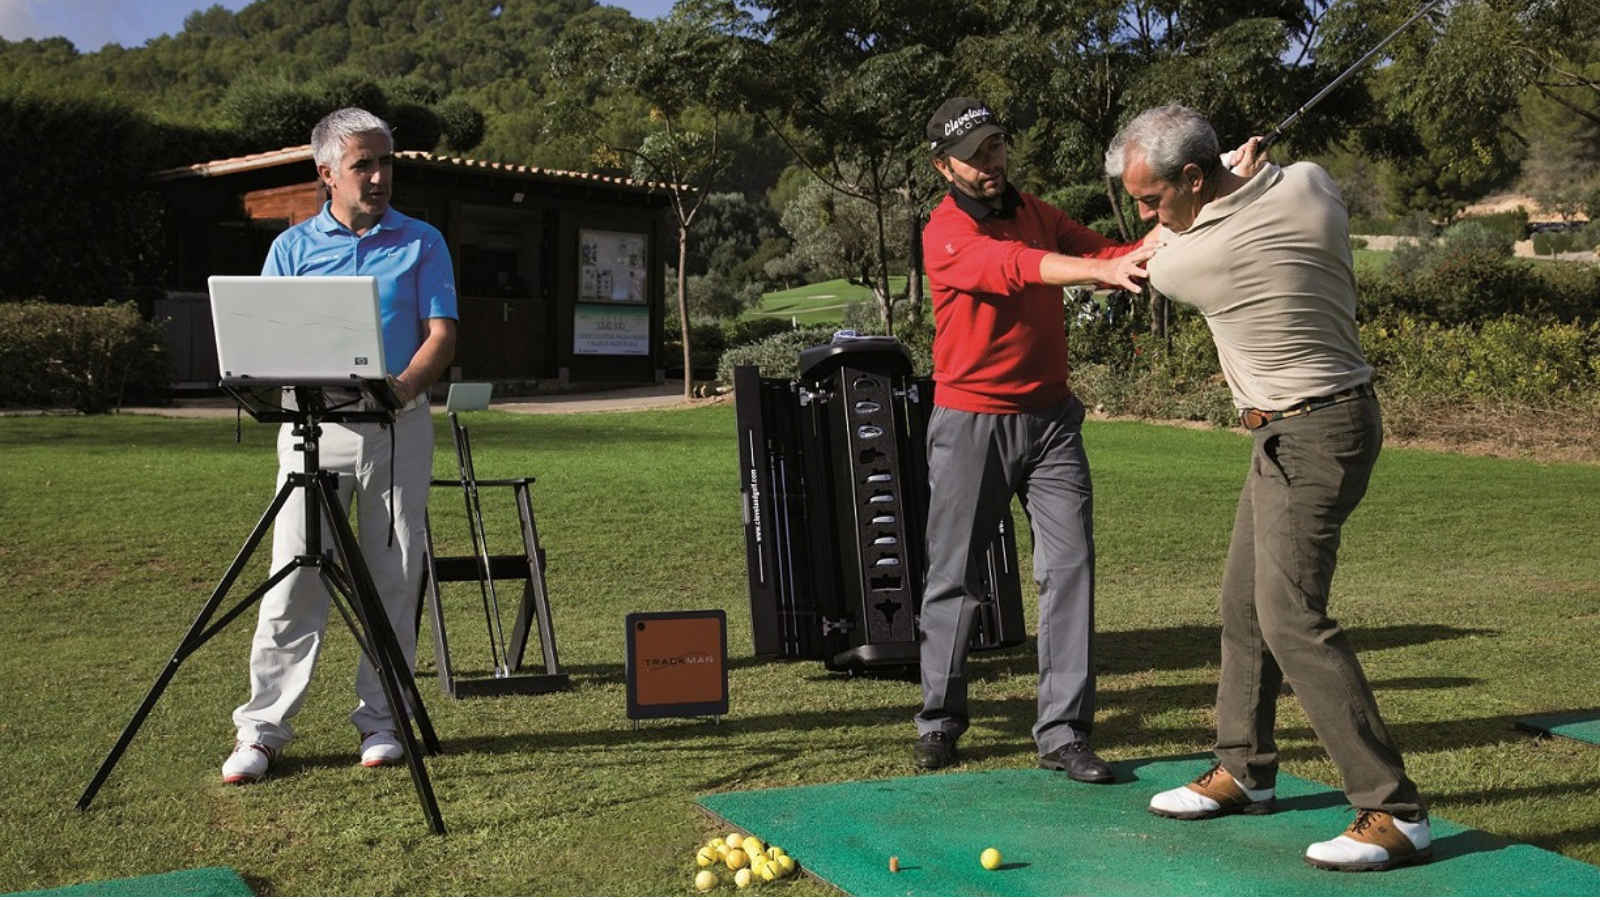 Golf Academy of Arabella Golf at The St. Regis Mardavall Mallorca